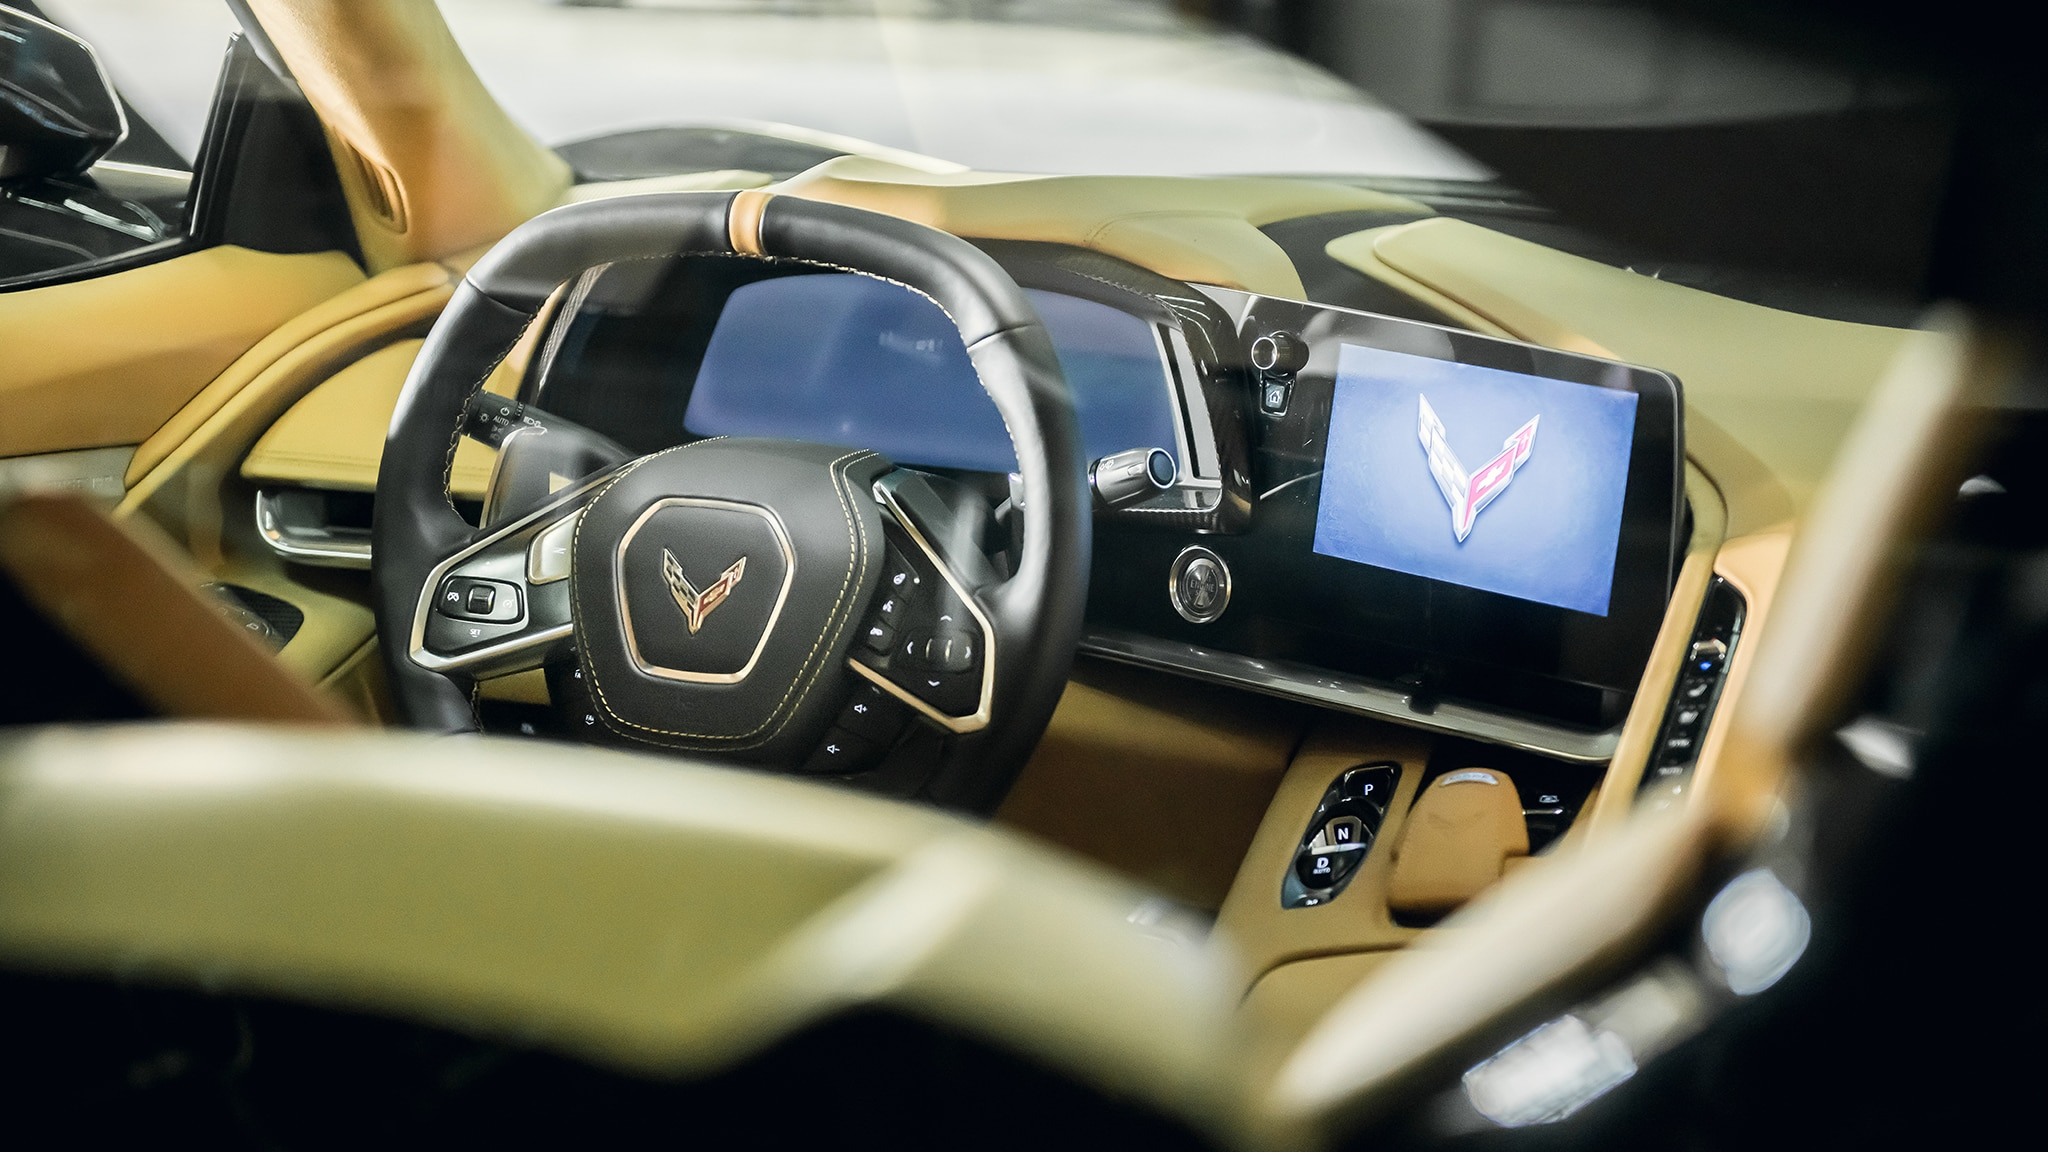 2020 Mid-Engine Chevrolet Corvette: All the Photos and